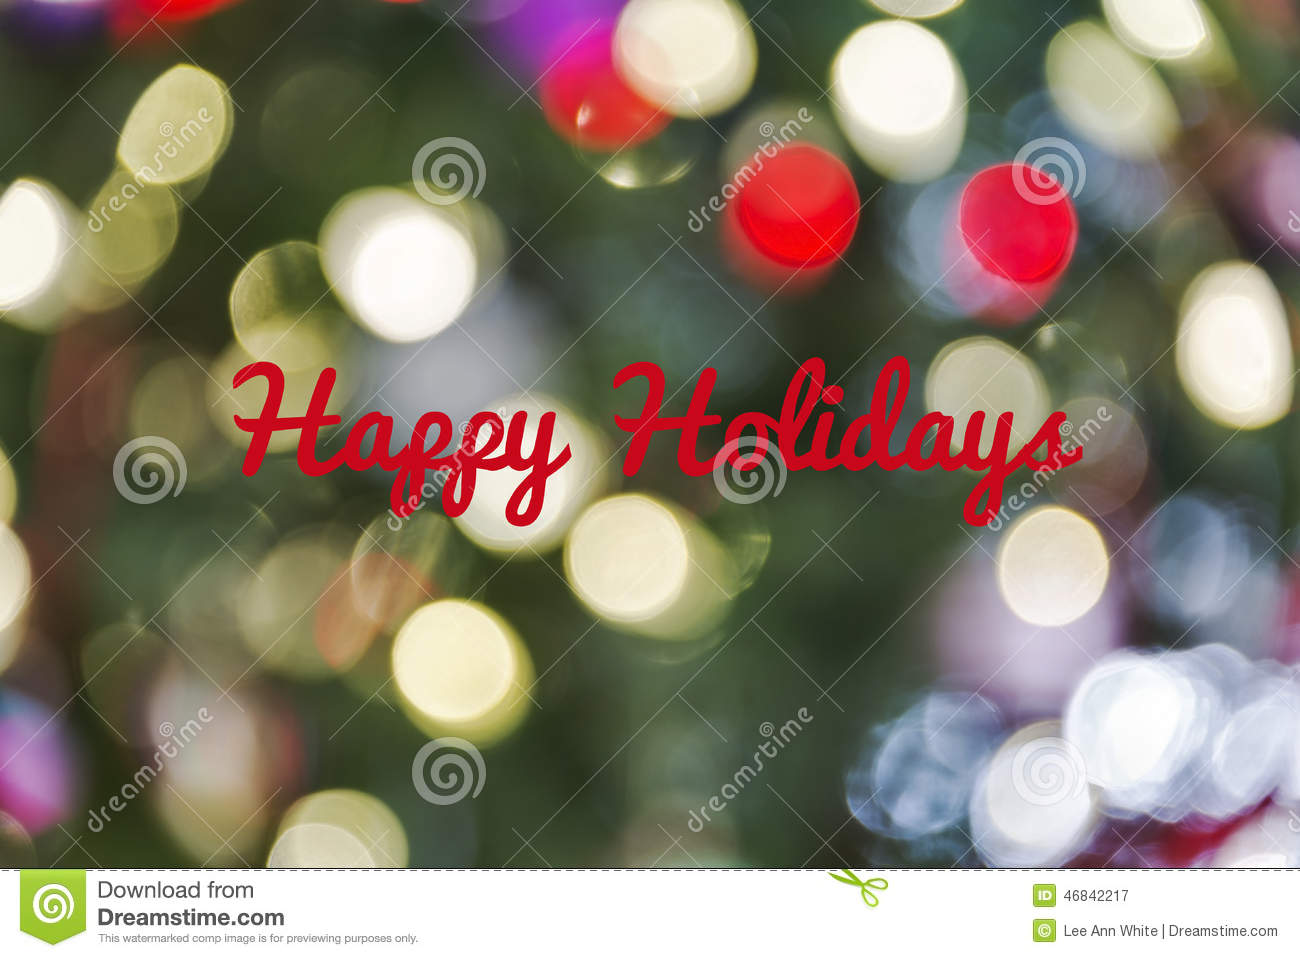 Defocused Christmas light background with Happy Holidays text